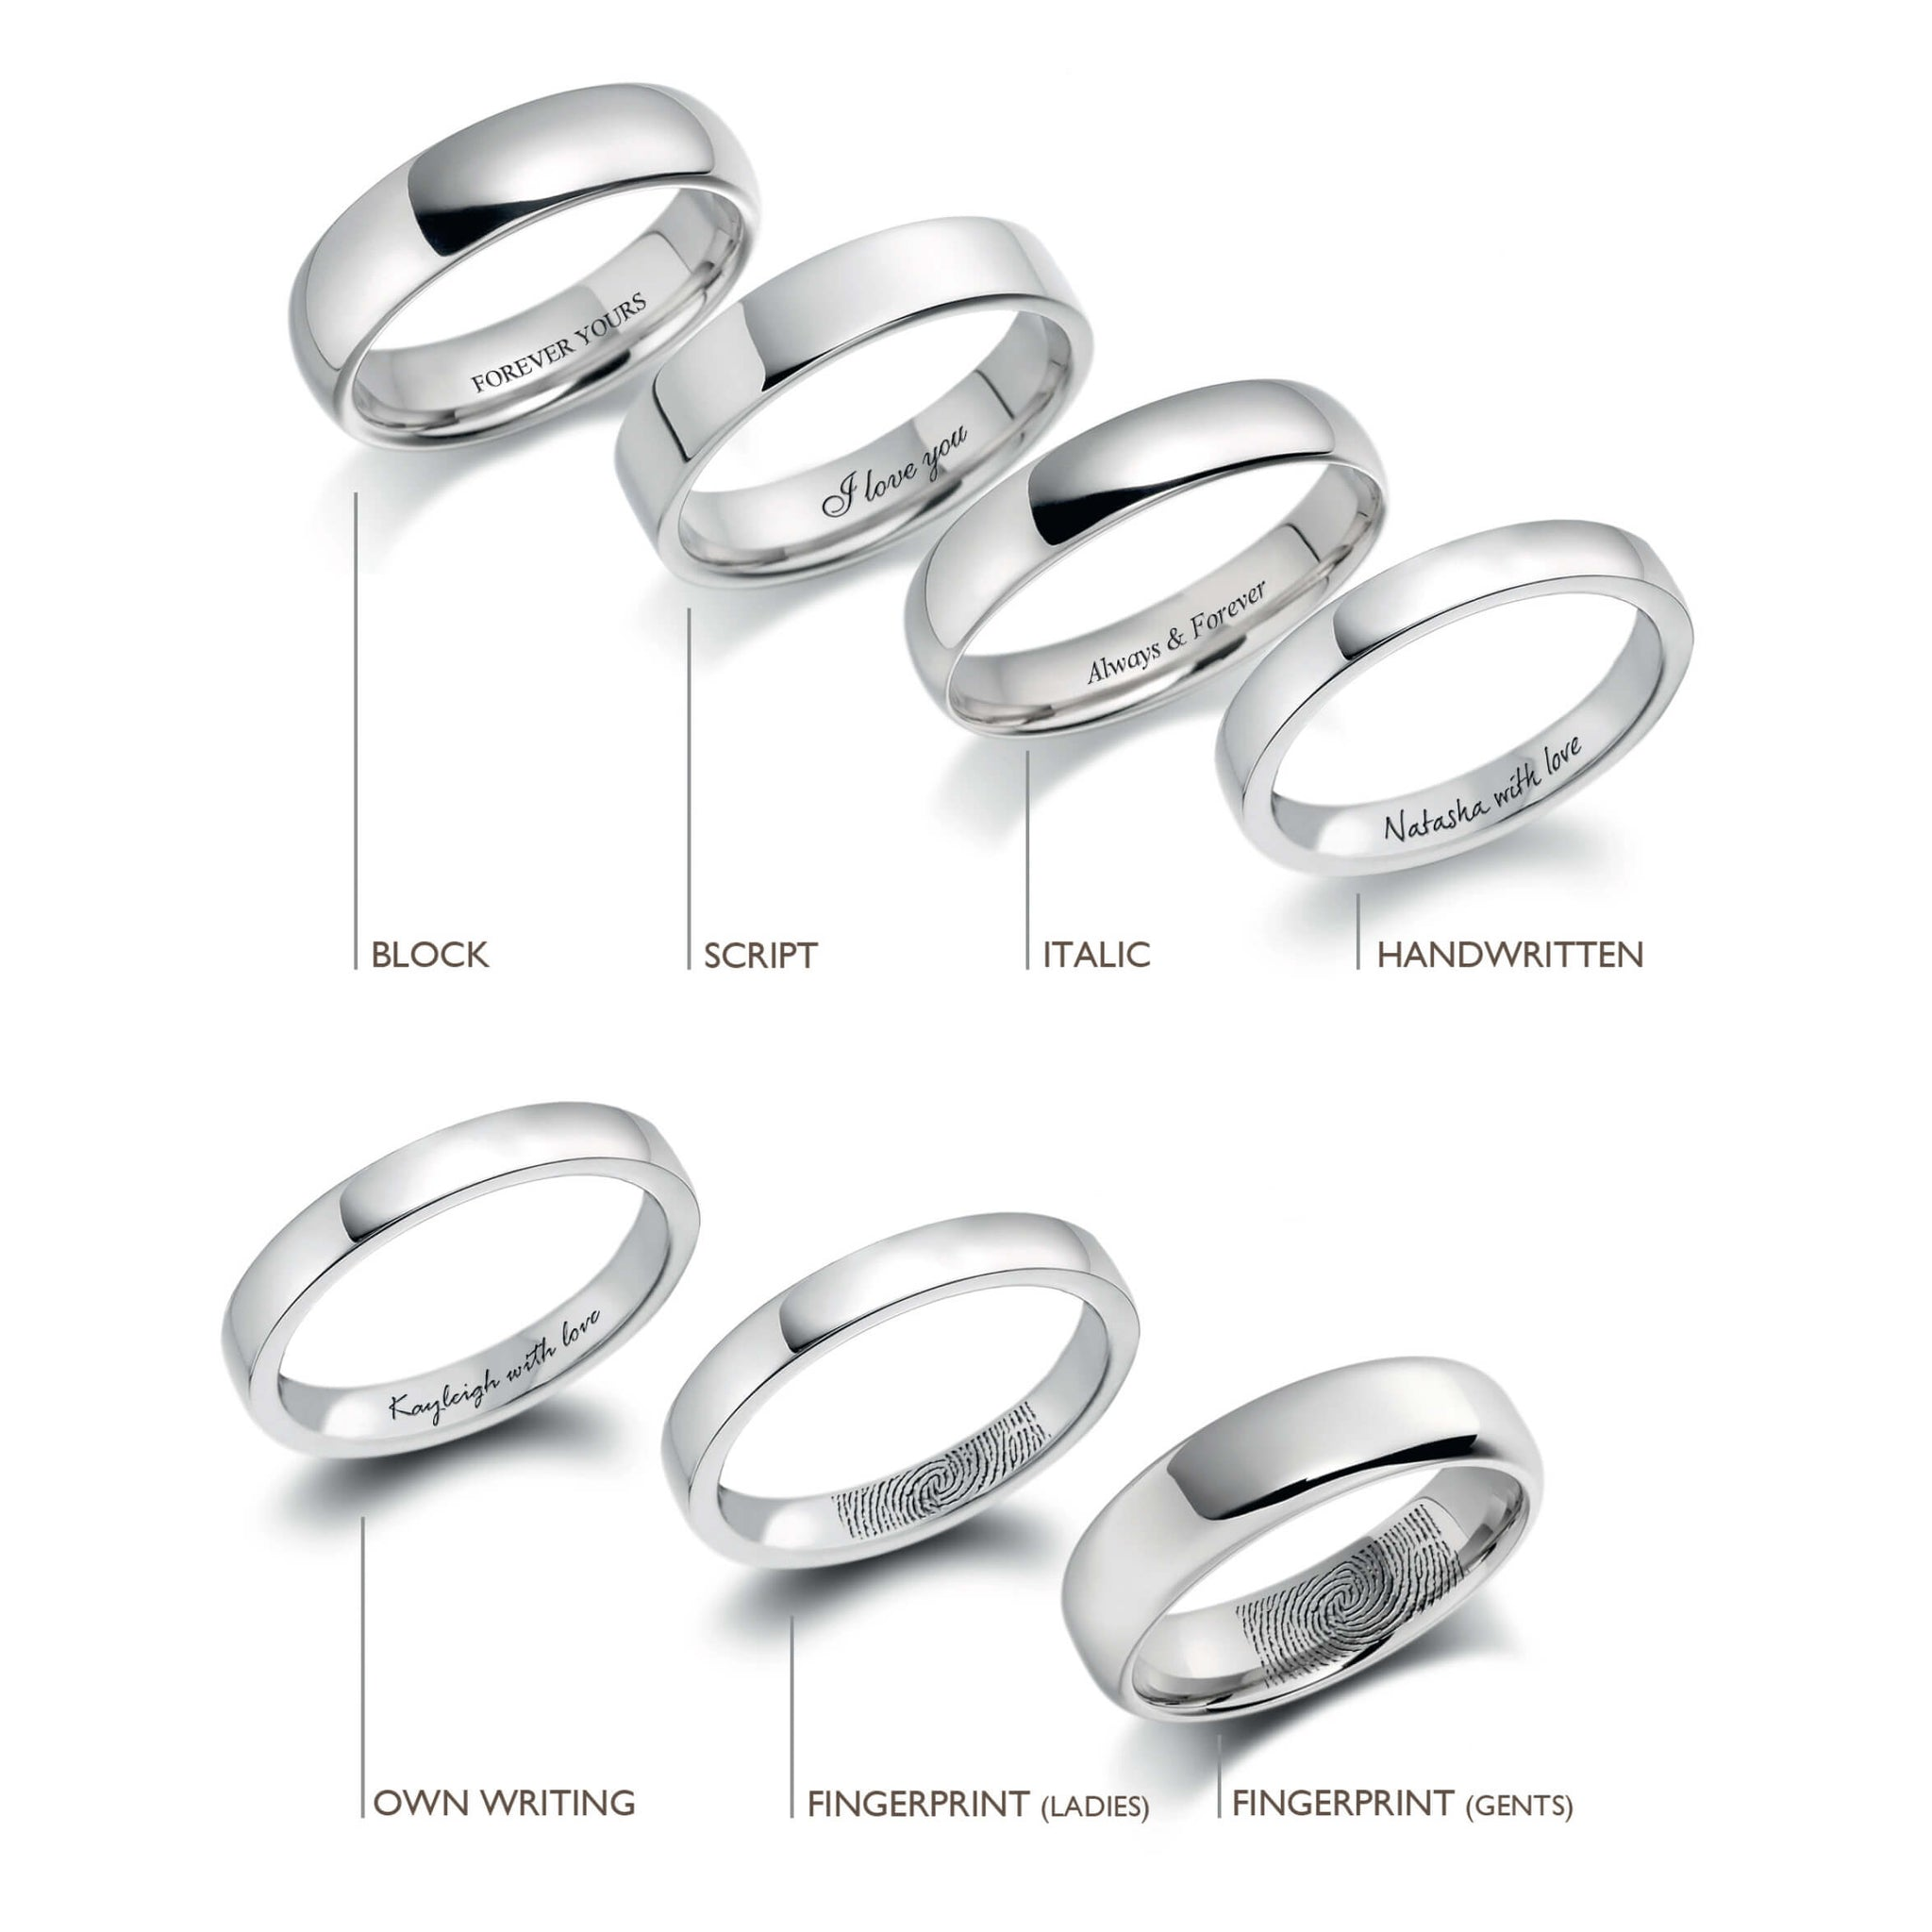 men collection for mens photo rings elegant guy male wedding band full sets couples patterned ring cool of women ideas design size guys